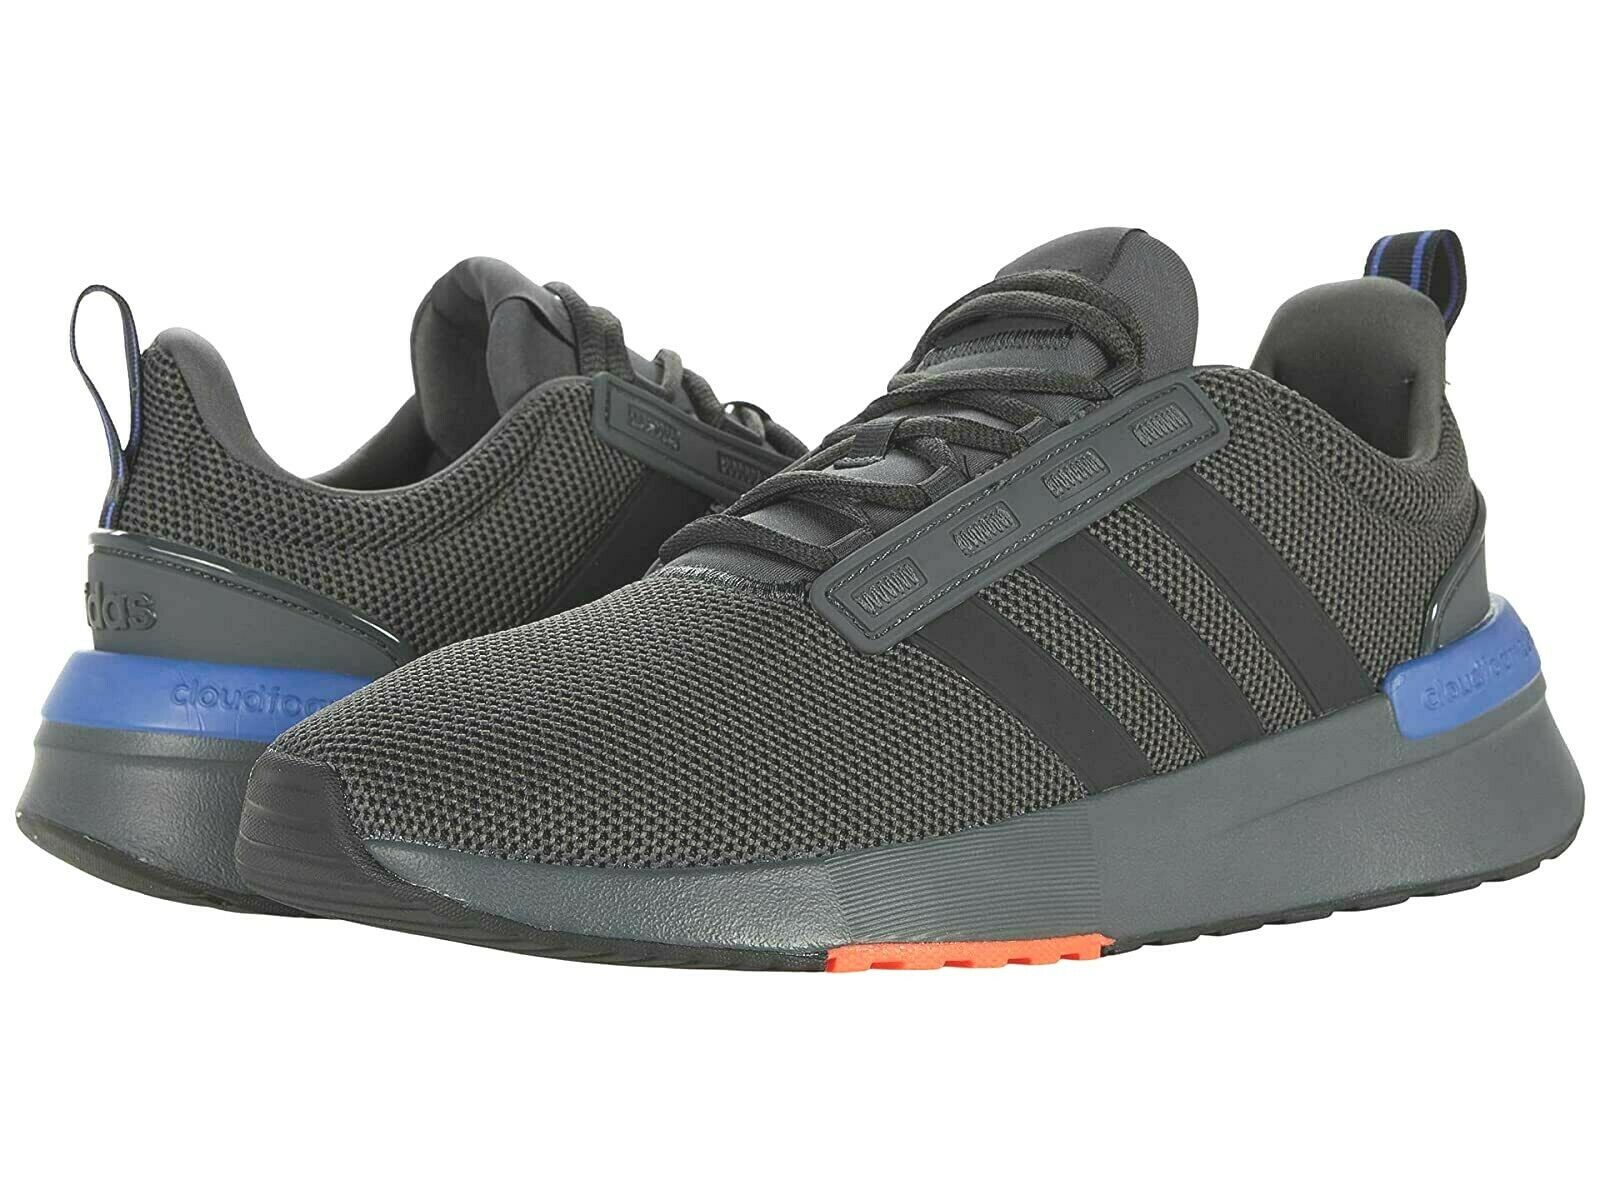 ADIDAS Racer TR21 – Running shoes – Men's 9.0 – GZ8185 – NEW – SALE PRICE !!!